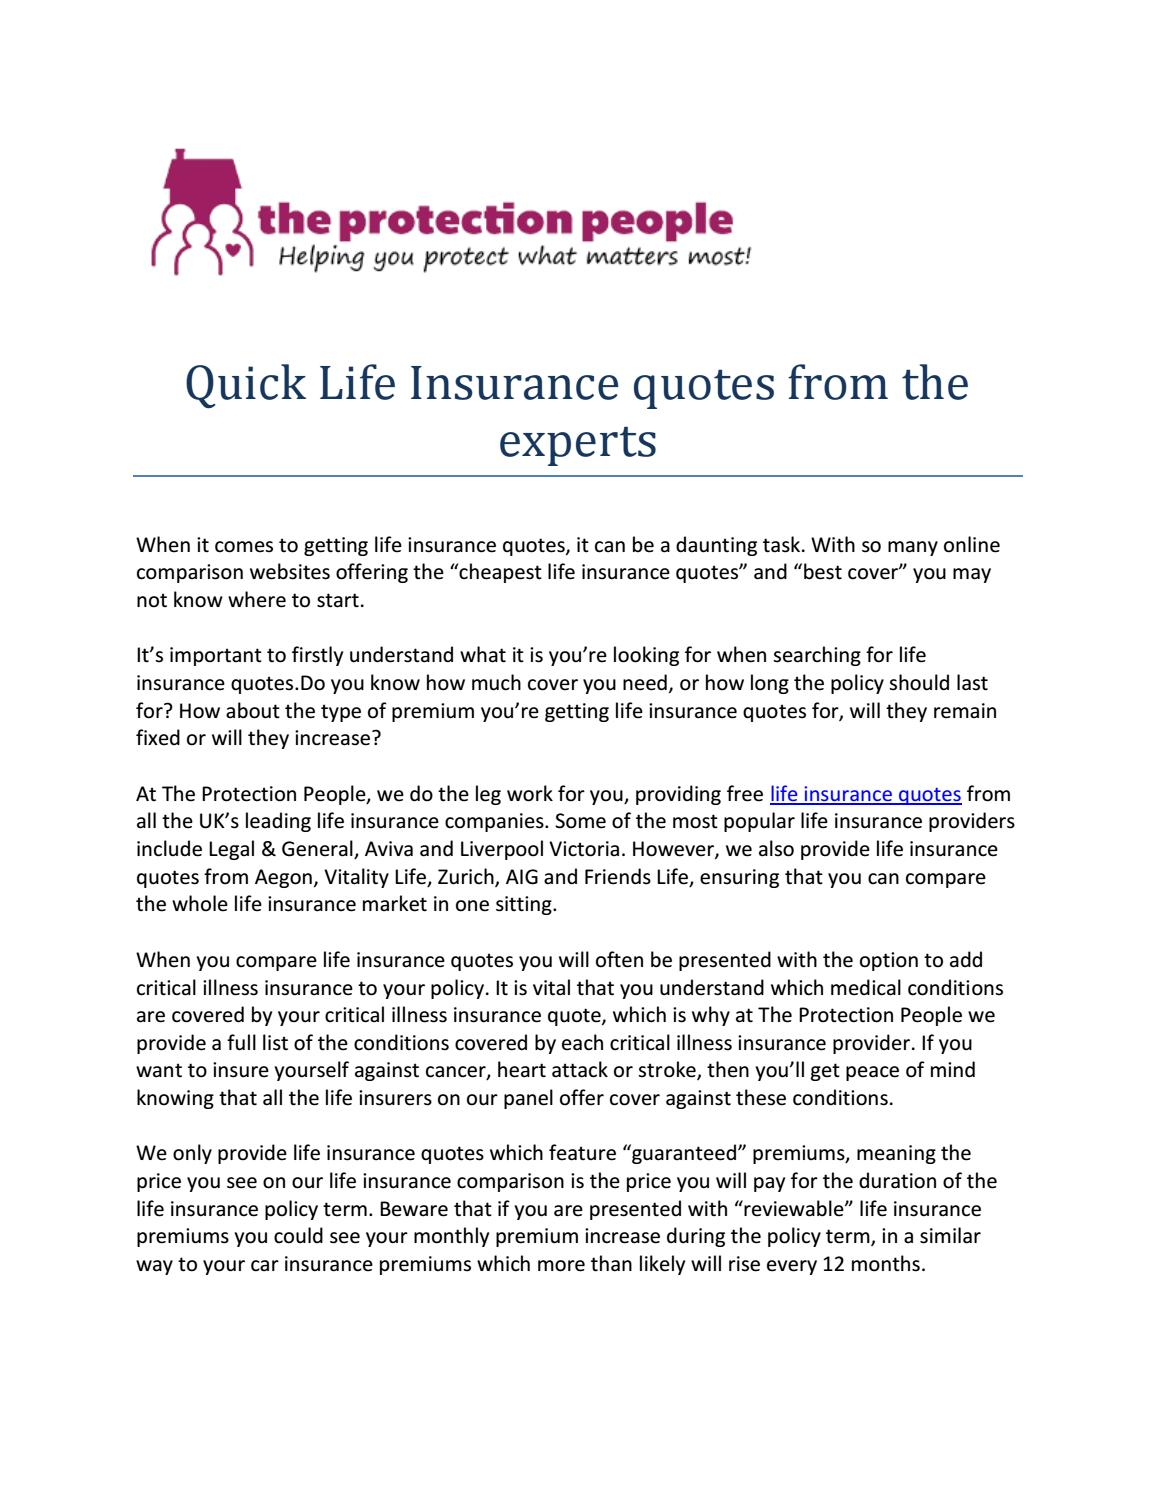 Aig Term Life Insurance Quote The Protection People  Quick Life Insurance Quotes From The